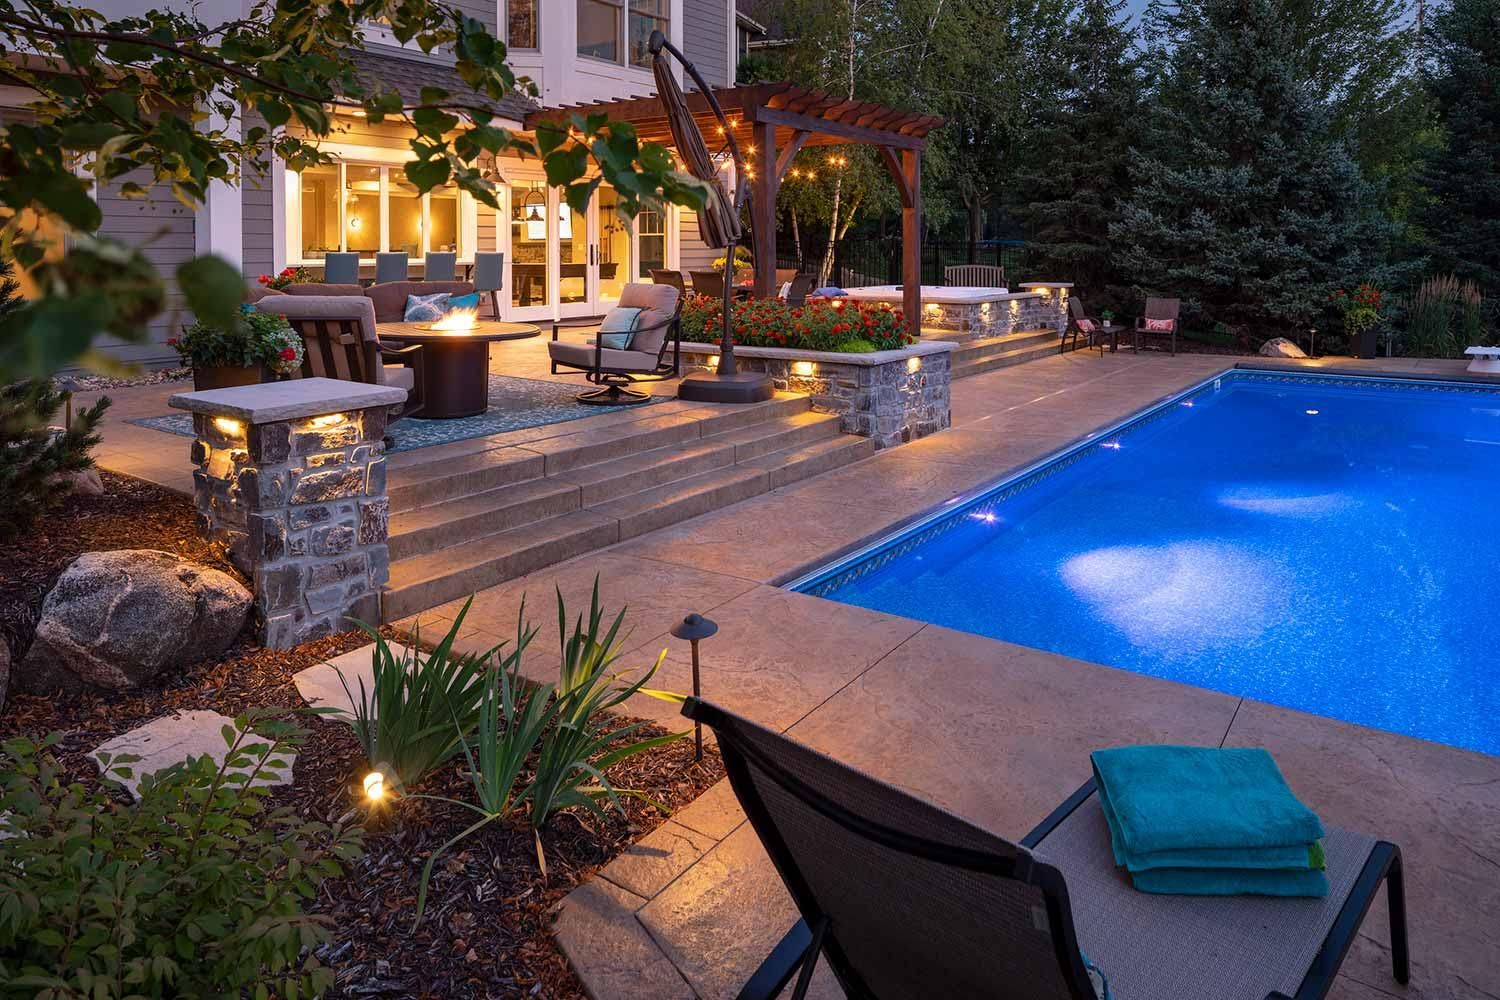 Outdoor lighting fire table garden and pool